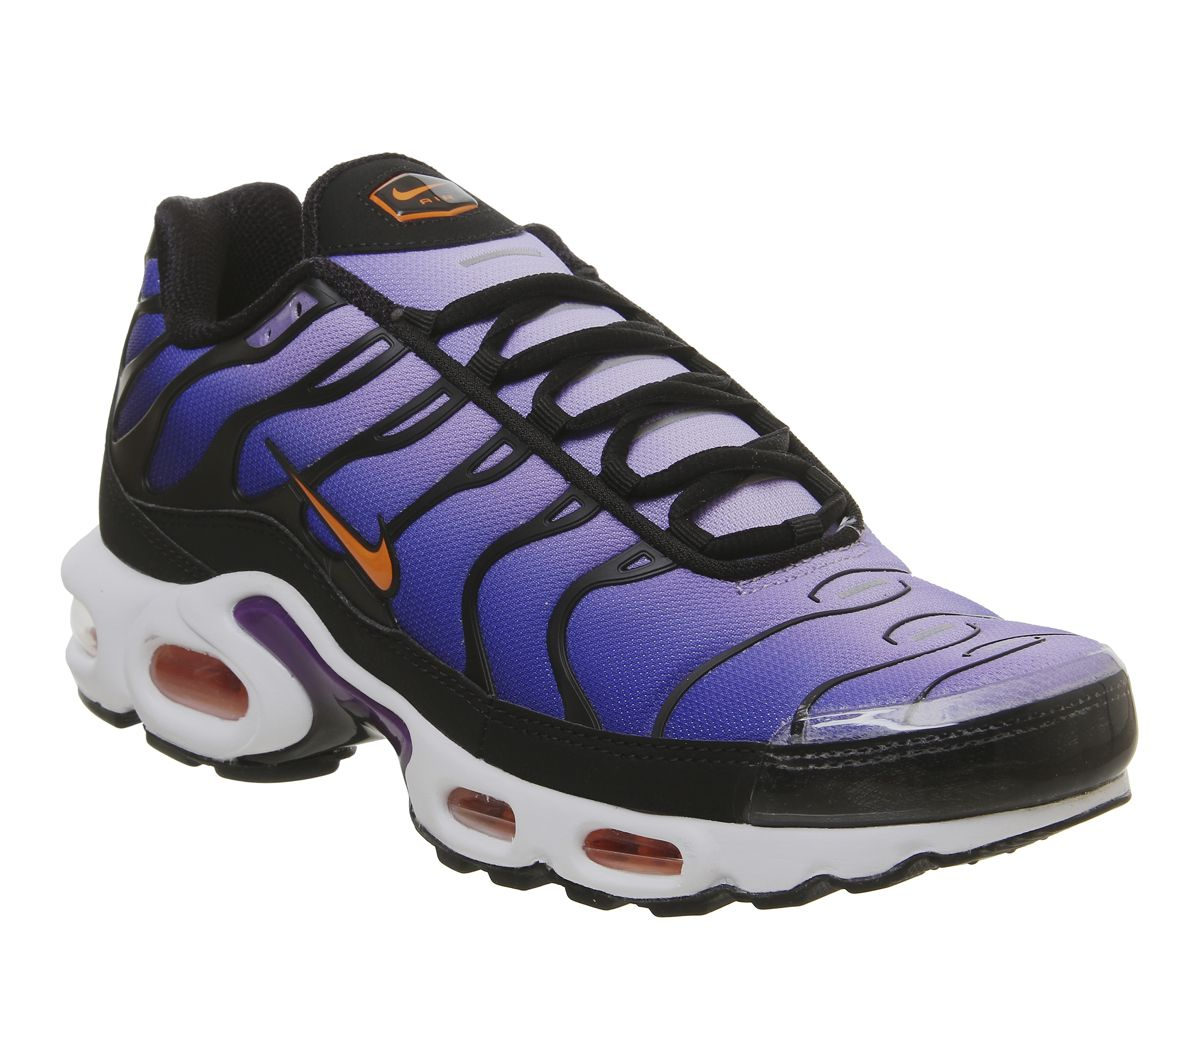 sports shoes 84238 c3d4b Air Max Plus Trainers